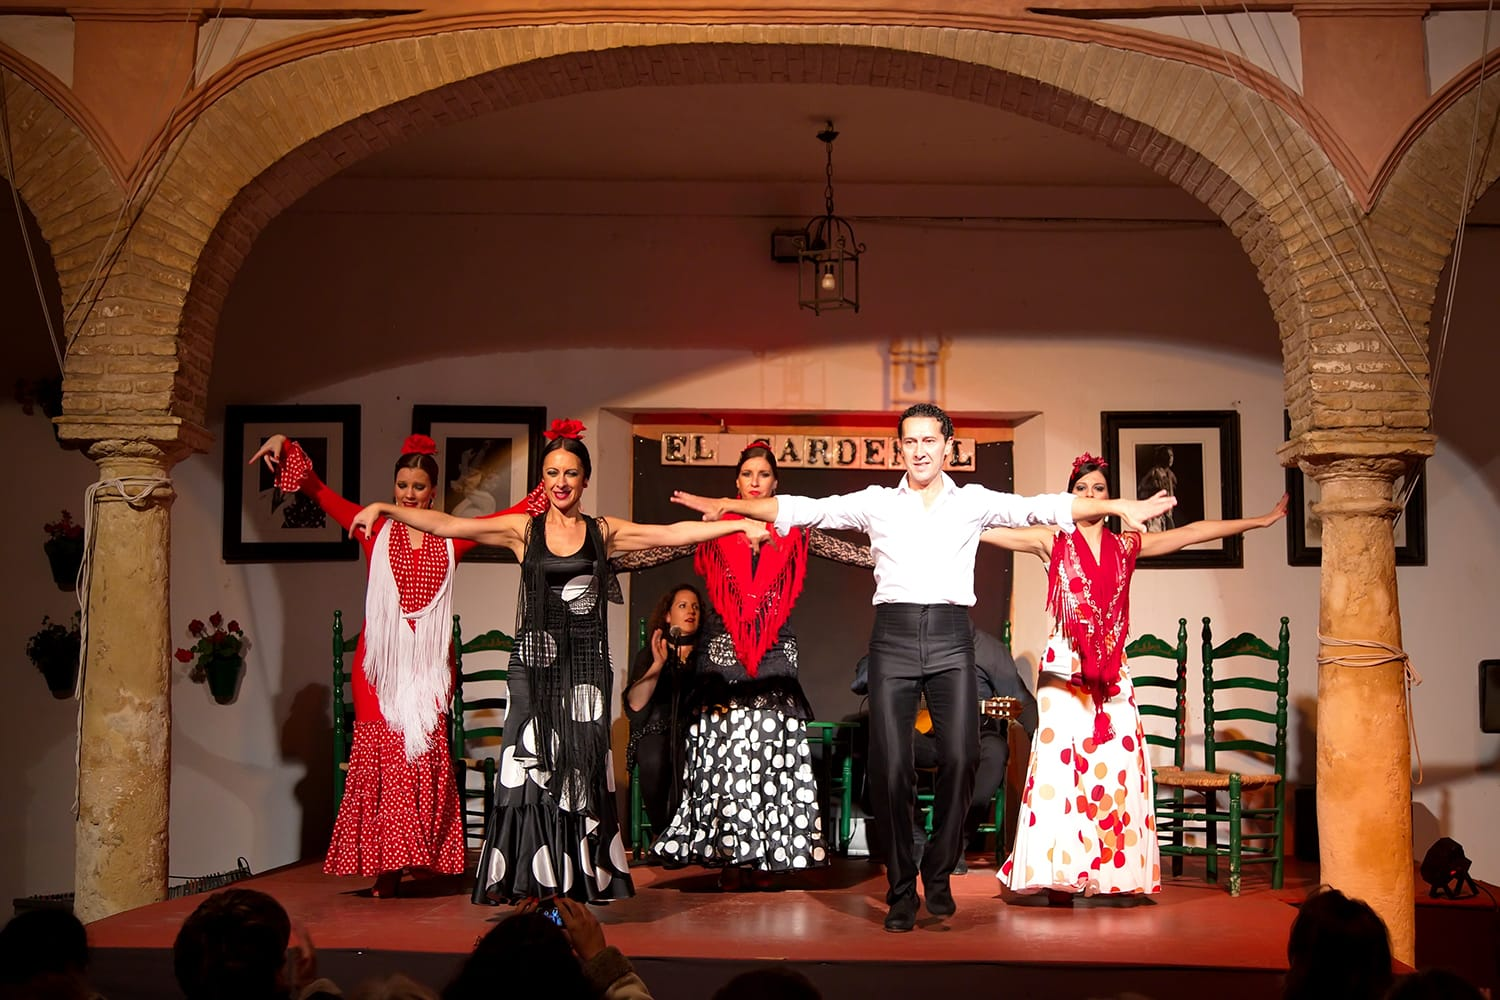 Flamenco dancers and singers performing at Tablao El Cardenal Flamenco Show in Cordoba, Spain